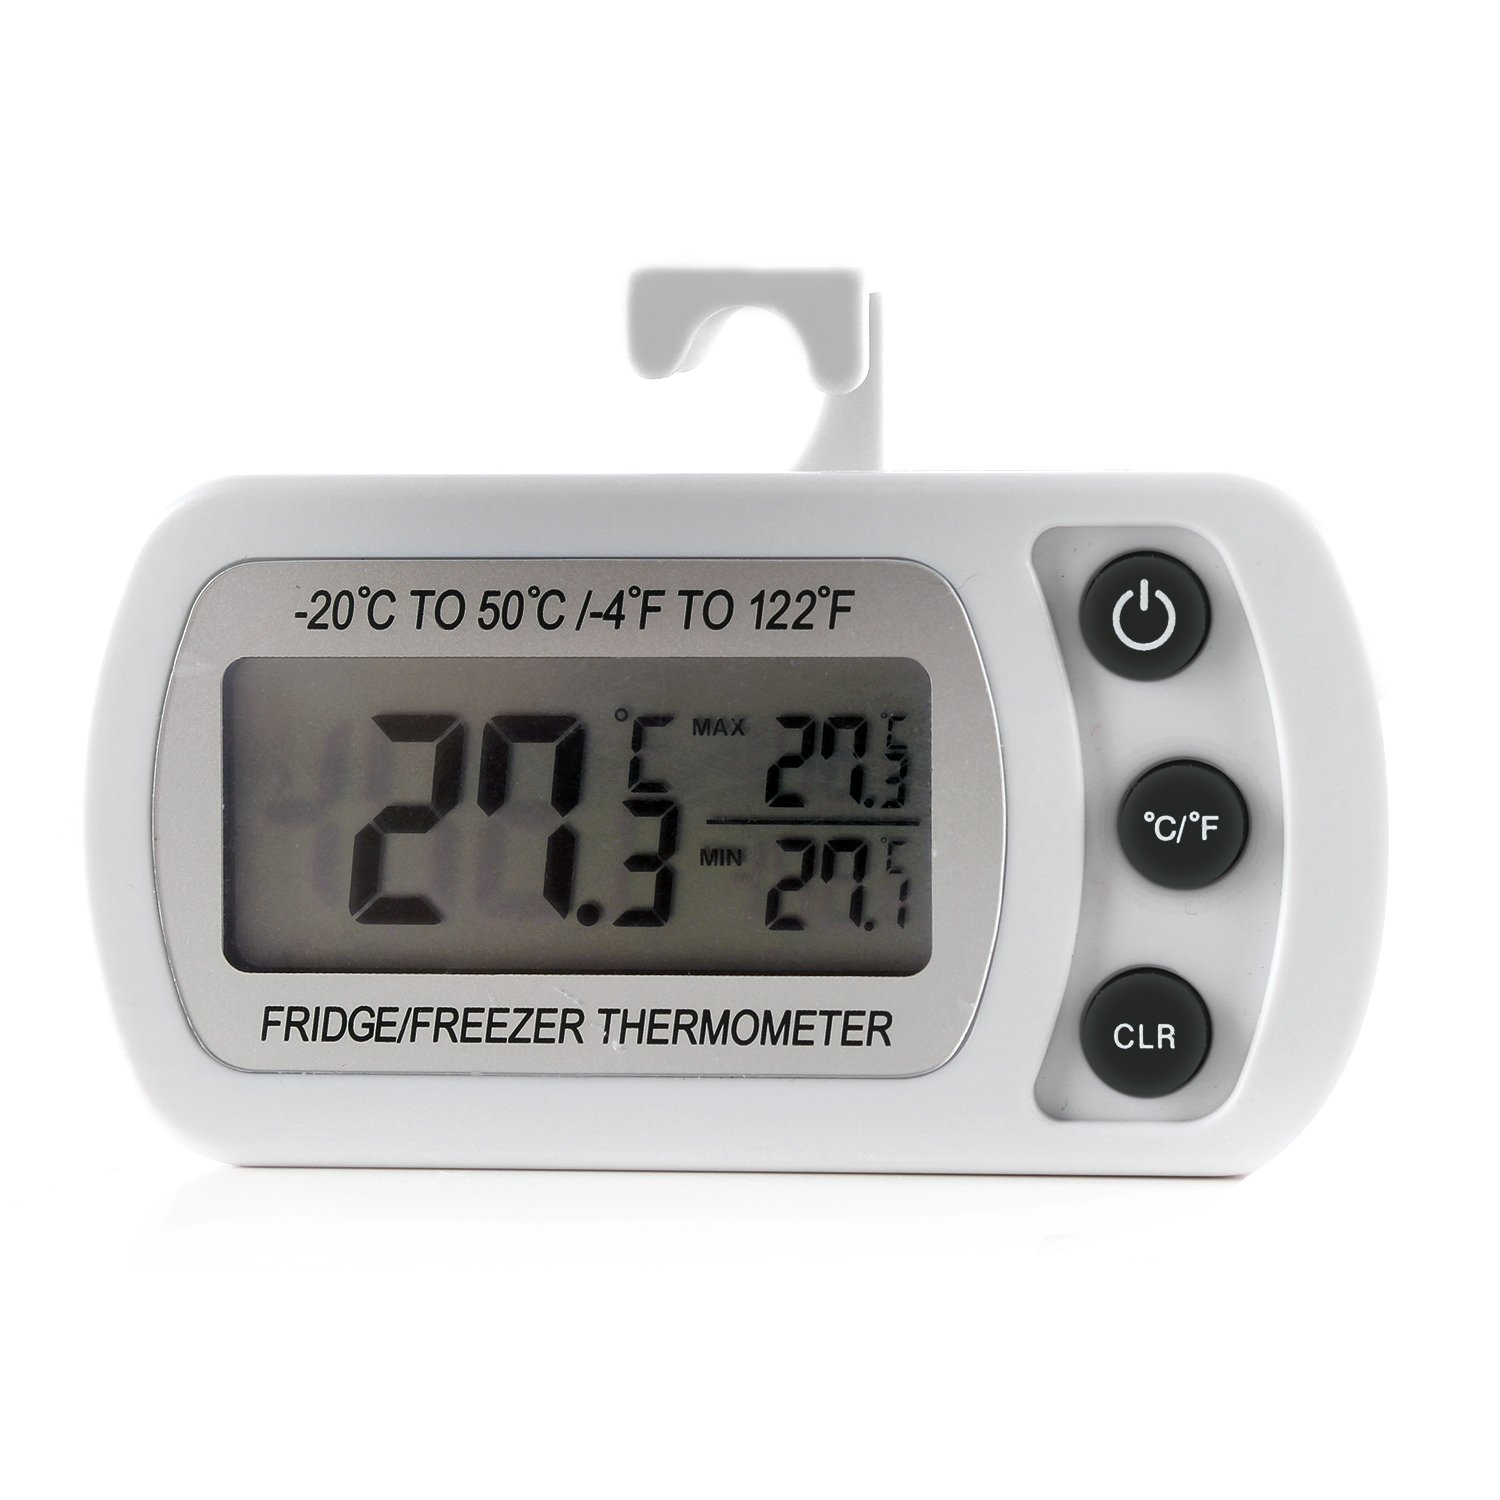 Unigear refrigerator fridge thermometer digital freezer room thermometer